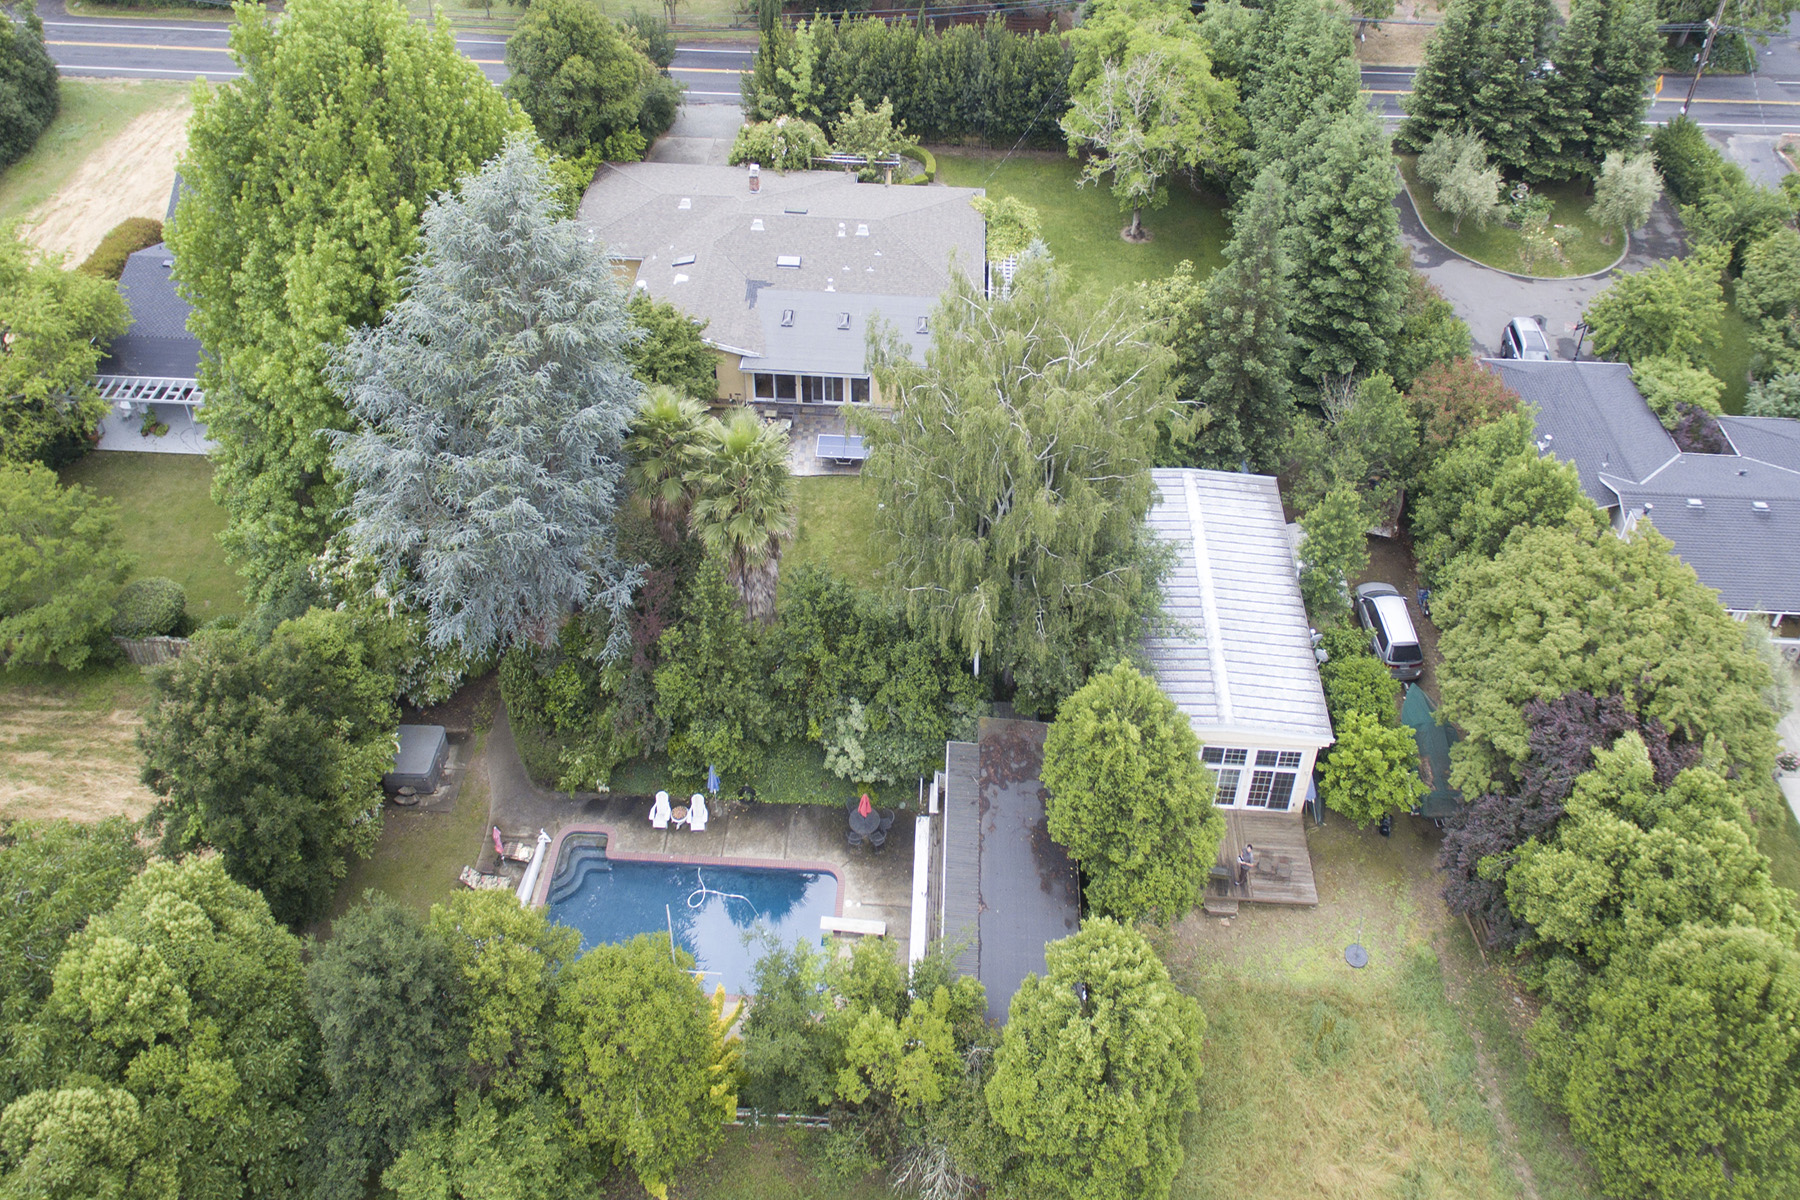 Single Family Home for Sale at 2960 Redwood Rd, Napa, CA 94558 2960 Redwood Rd Napa, California, 94558 United States